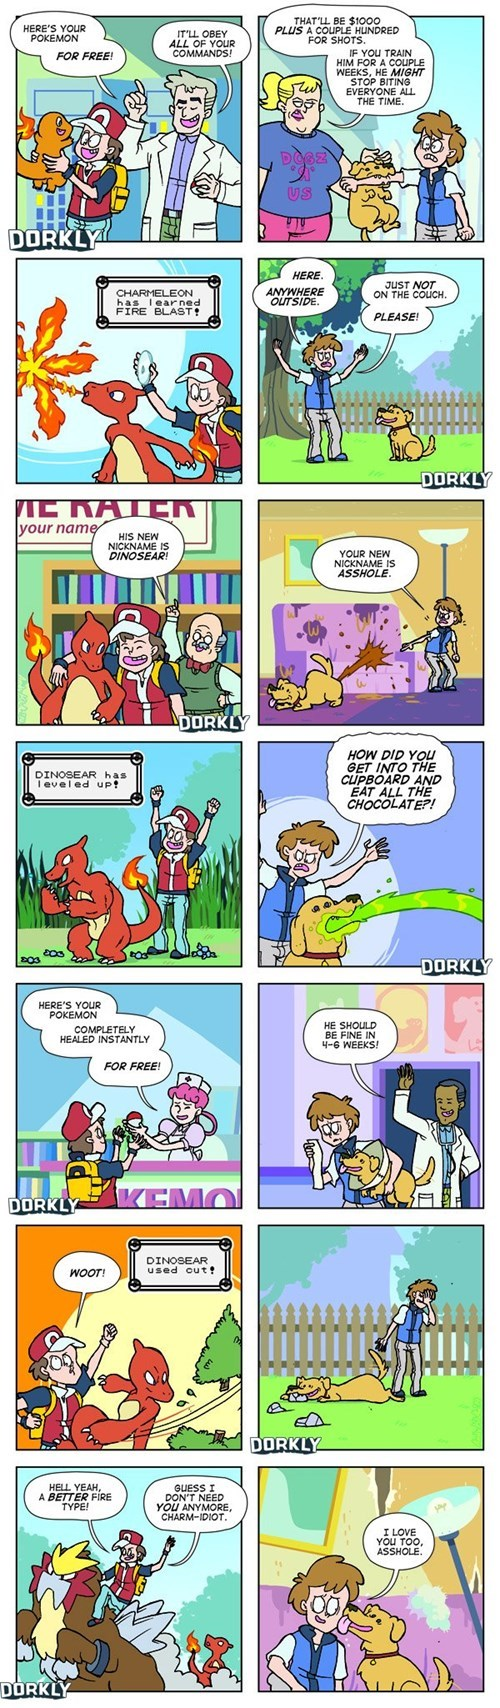 Pokémon dorkly pets animals web comics - 8161969920